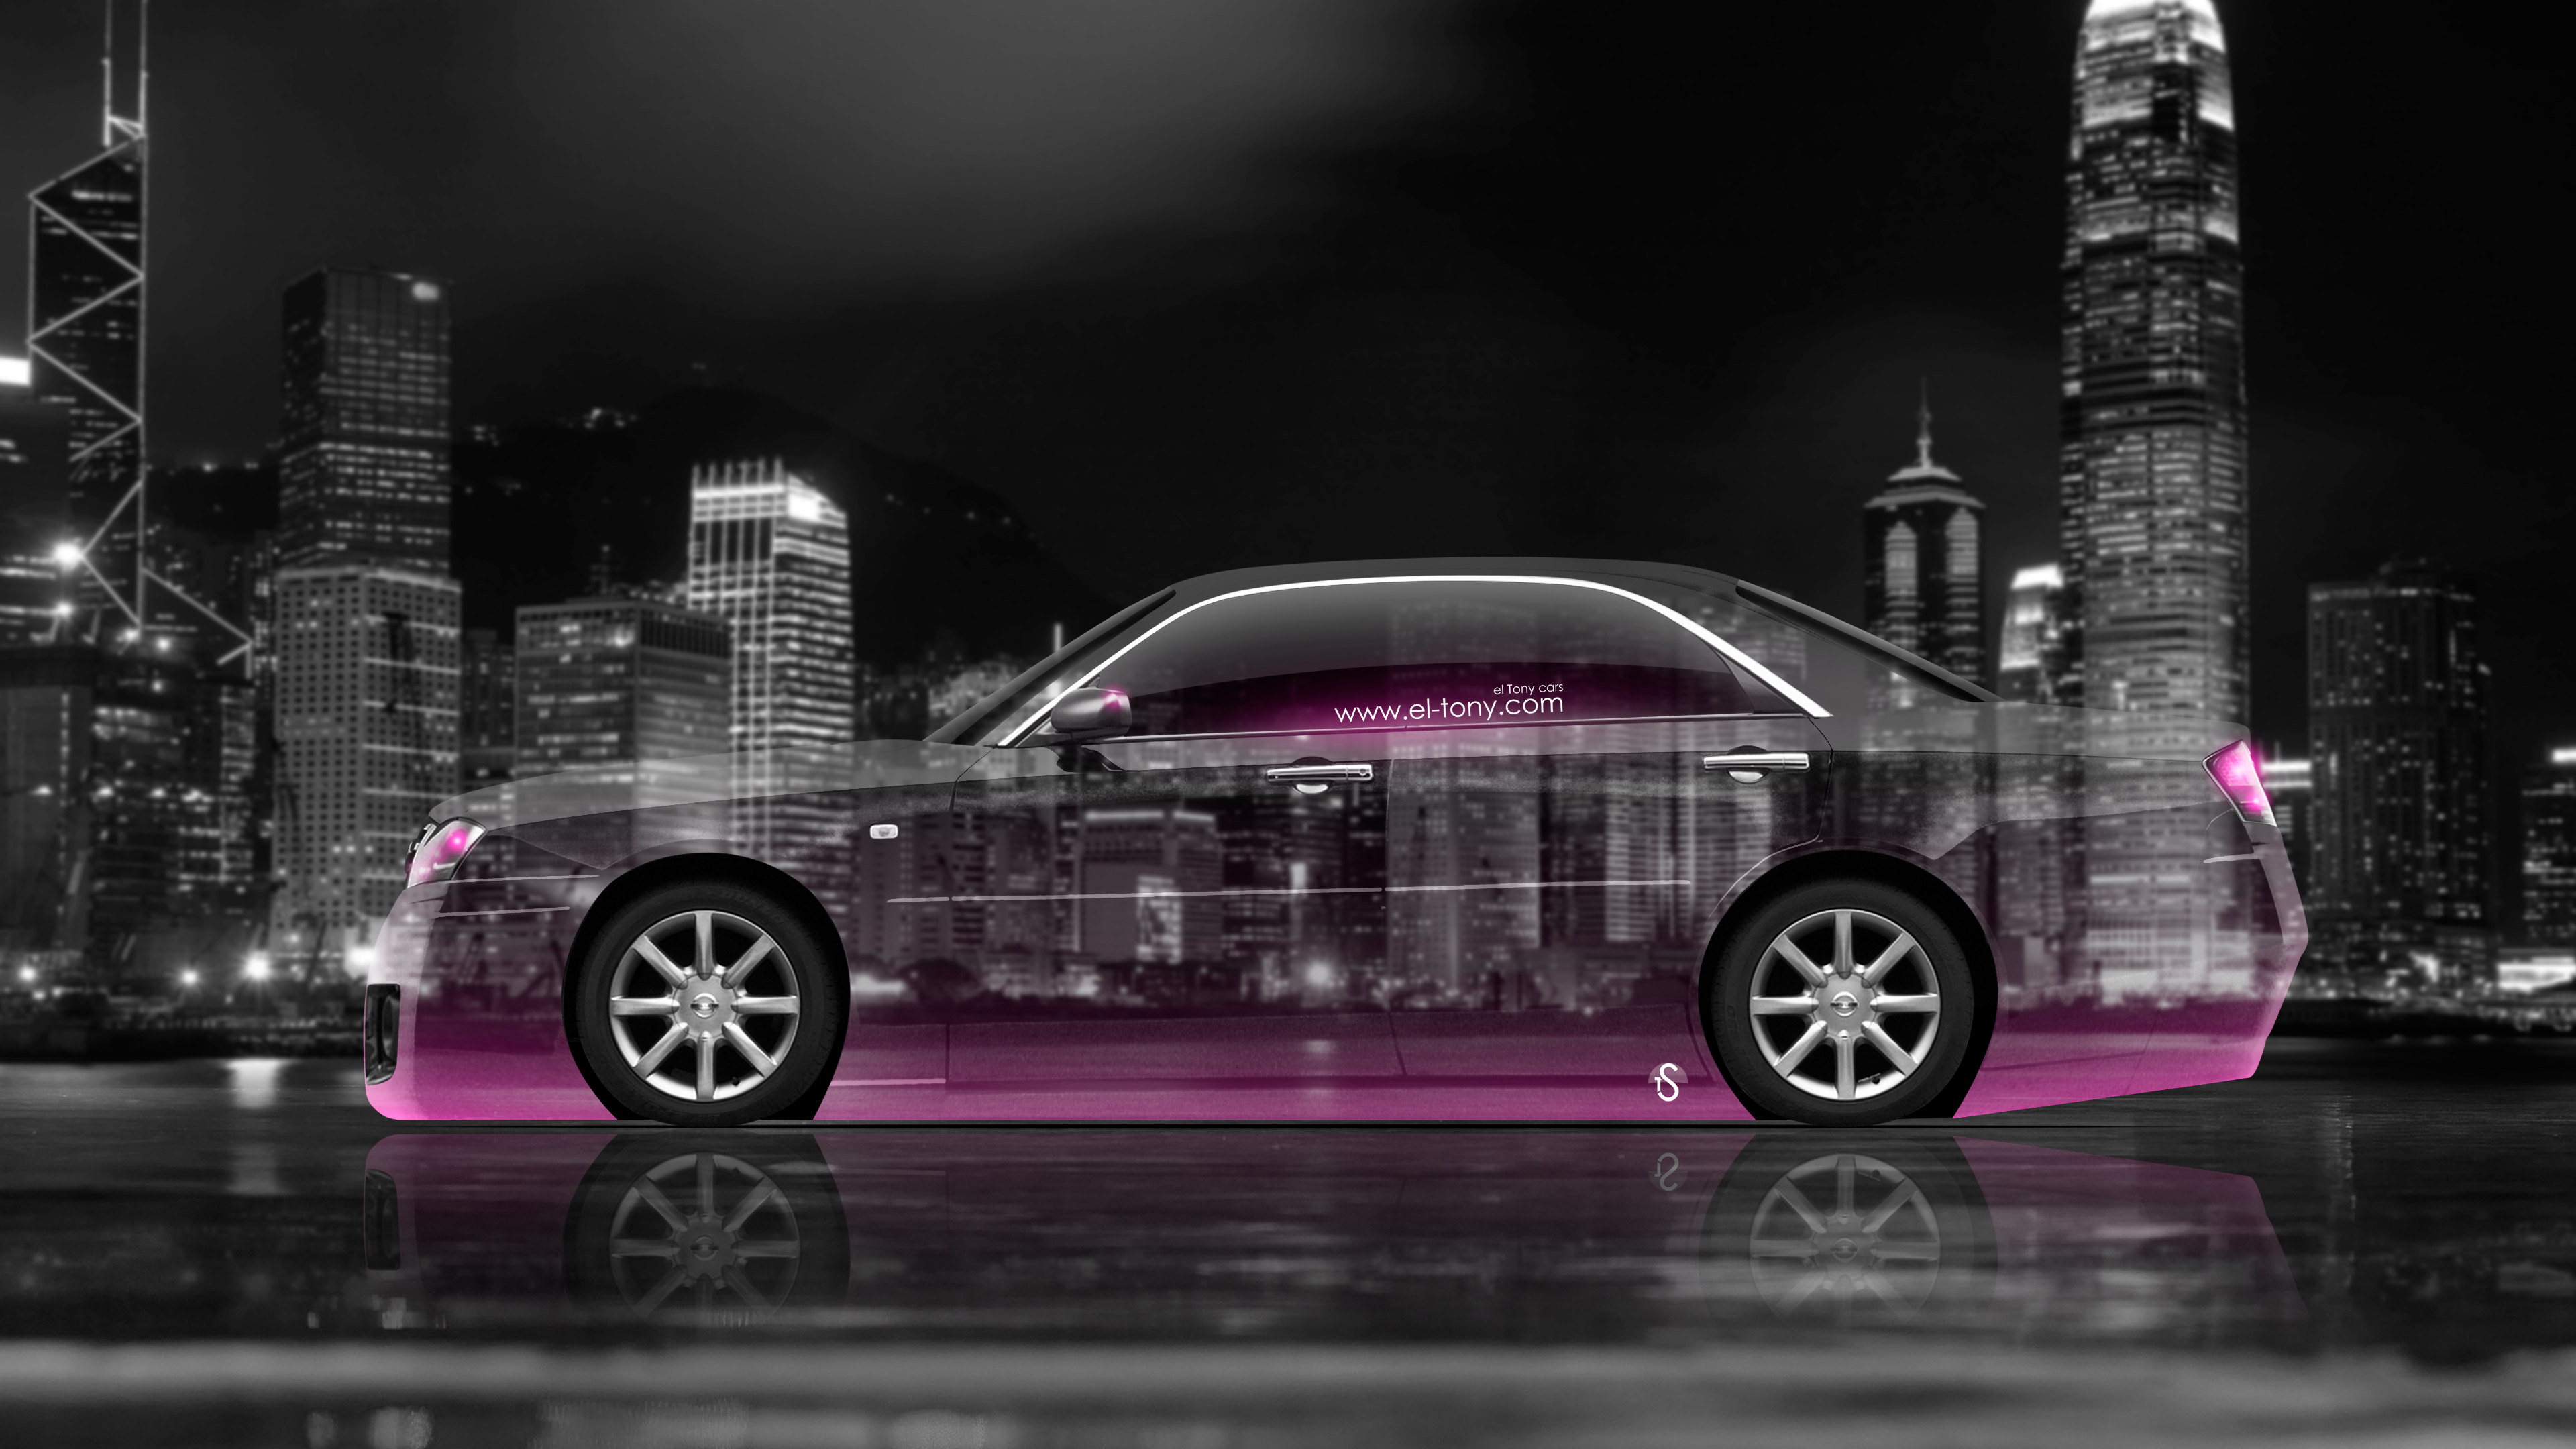 Cedric JDM Tuning Side Crystal City Car 2015 Pink Neon 4K Wallpapers  3840x2160